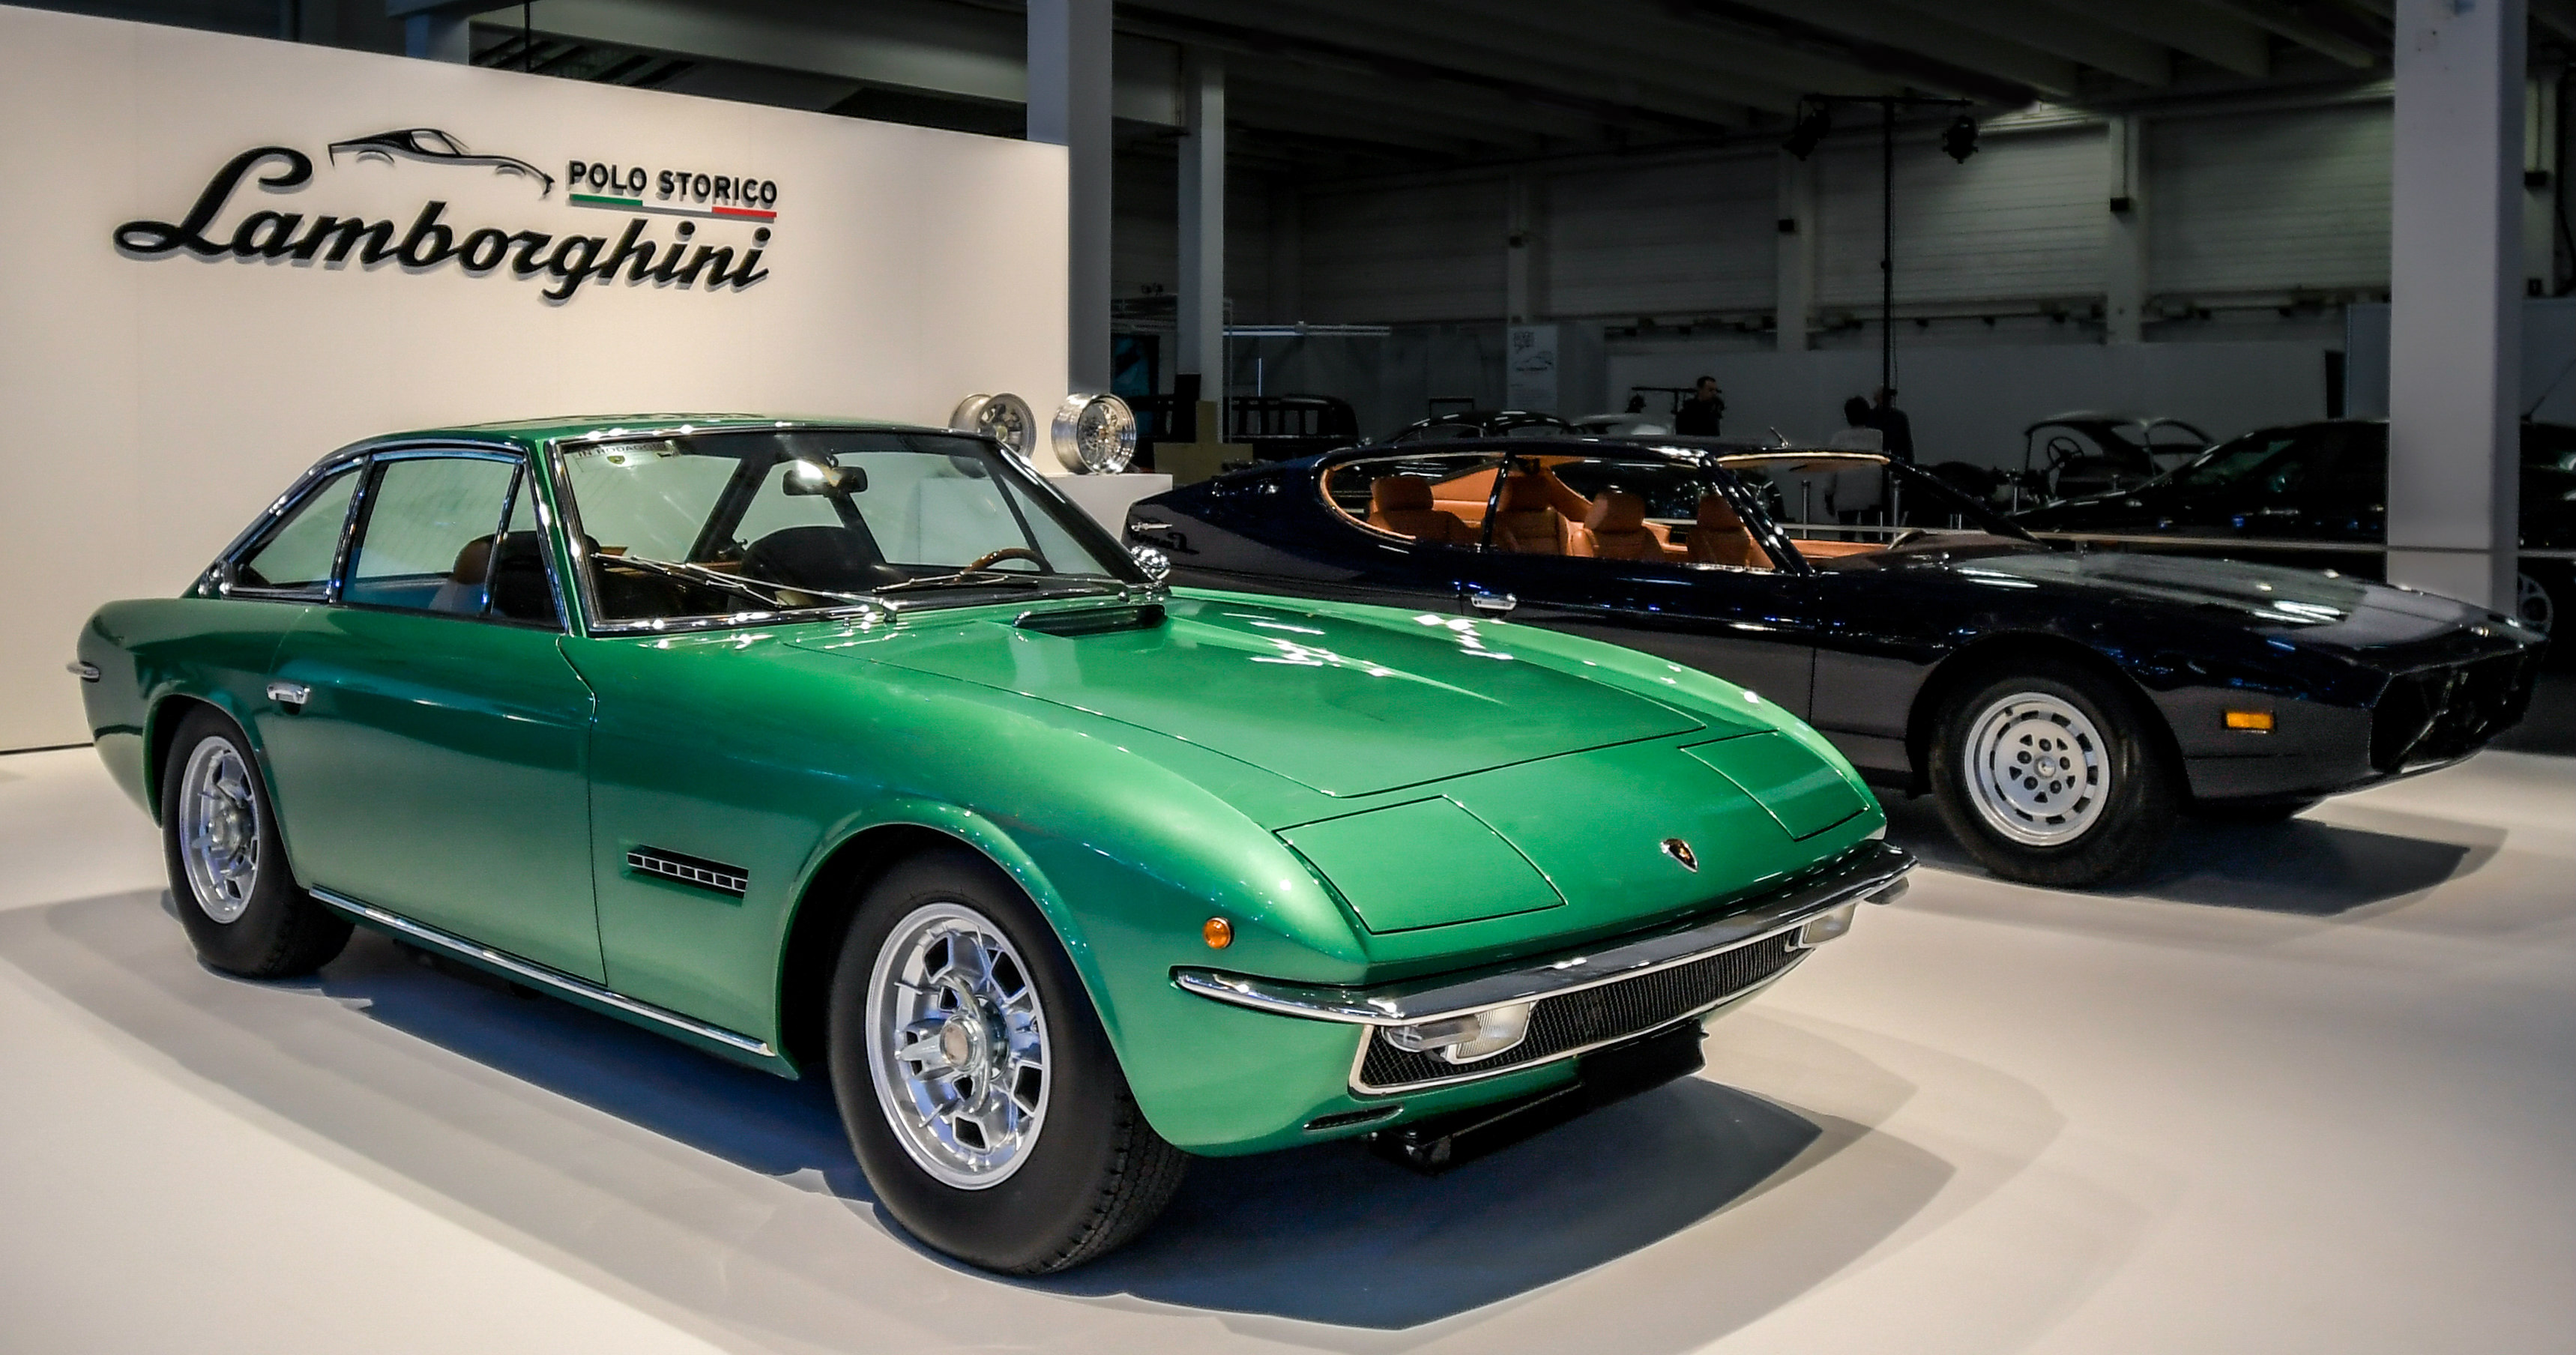 To mark this momentous occasion, Lamborghini Polo Storico, the division devoted to the House of the Raging Bull's historic cars, has completed the restoration of the Islero and the Espada that belong to the Lamborghini Museum and announced a tour dedicated to these two historical models.